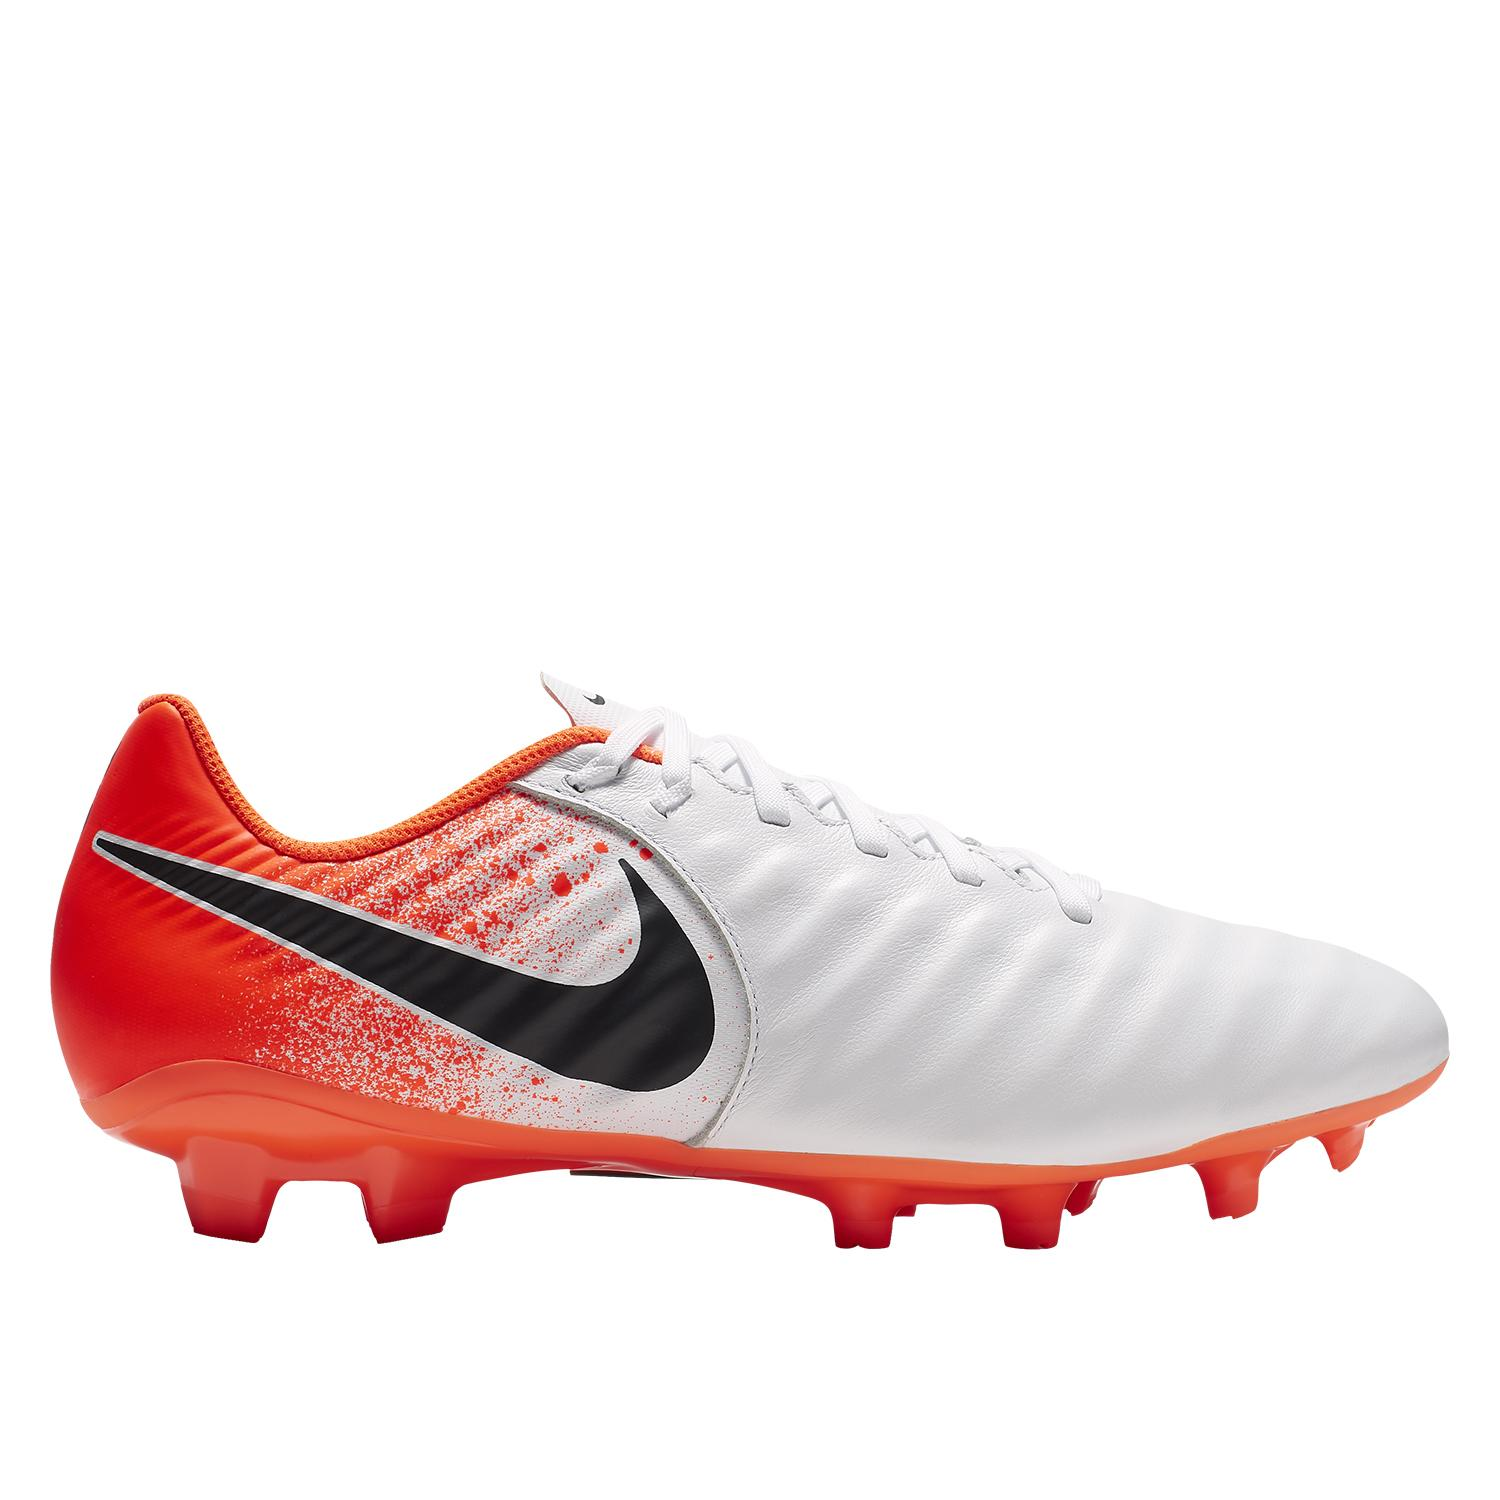 65b05885d4a Nike Tiempo Legend 7 Academy Firm Ground Men s Football Boot in ...